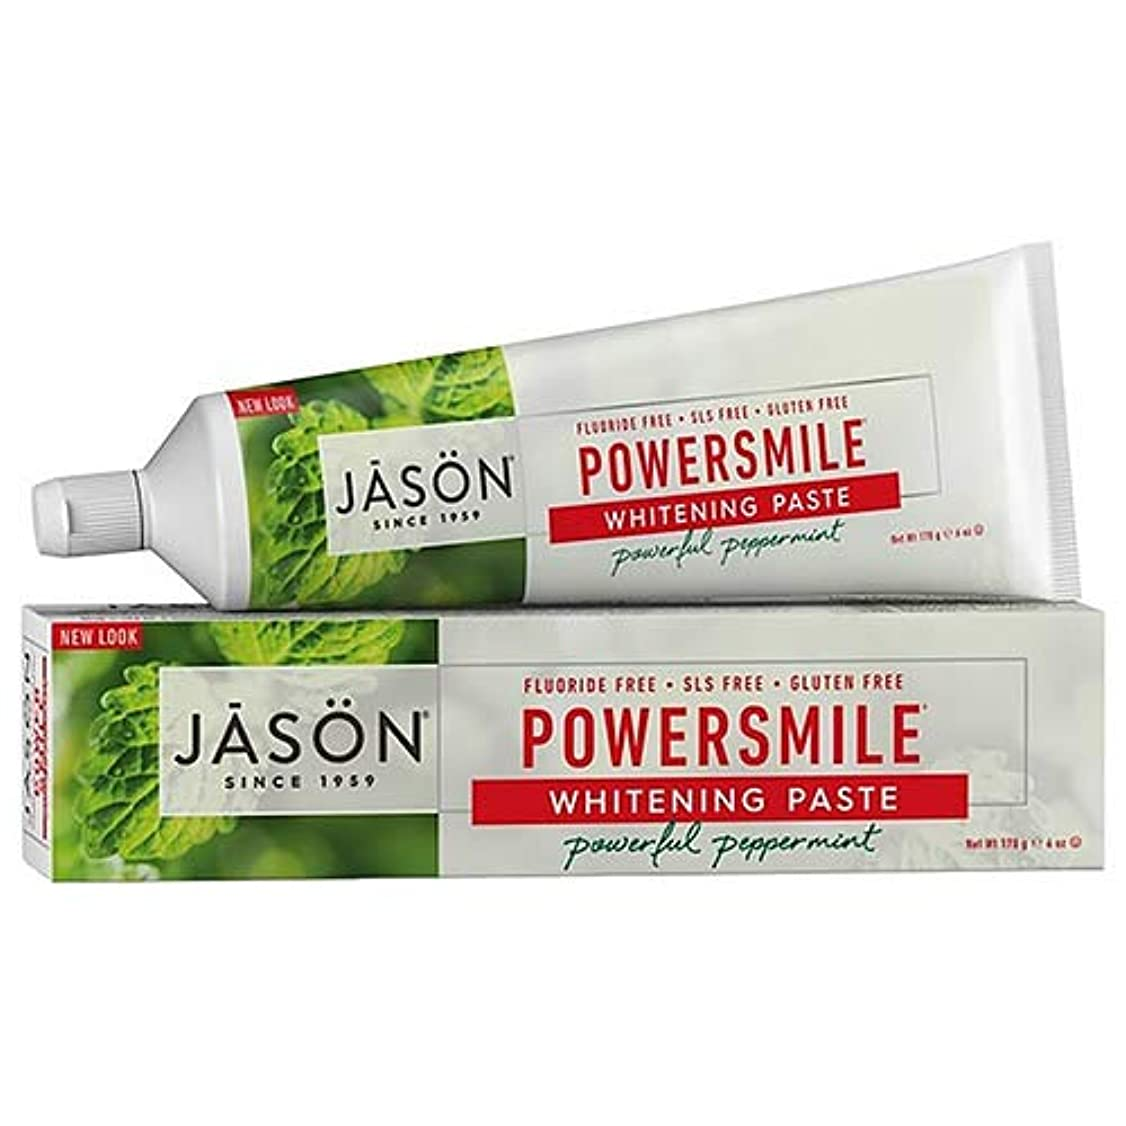 藤色ライラックテクスチャーJason Natural, PowerSmile, Antiplaque & Whitening Paste, Powerful Peppermint, 6 oz (170 g)